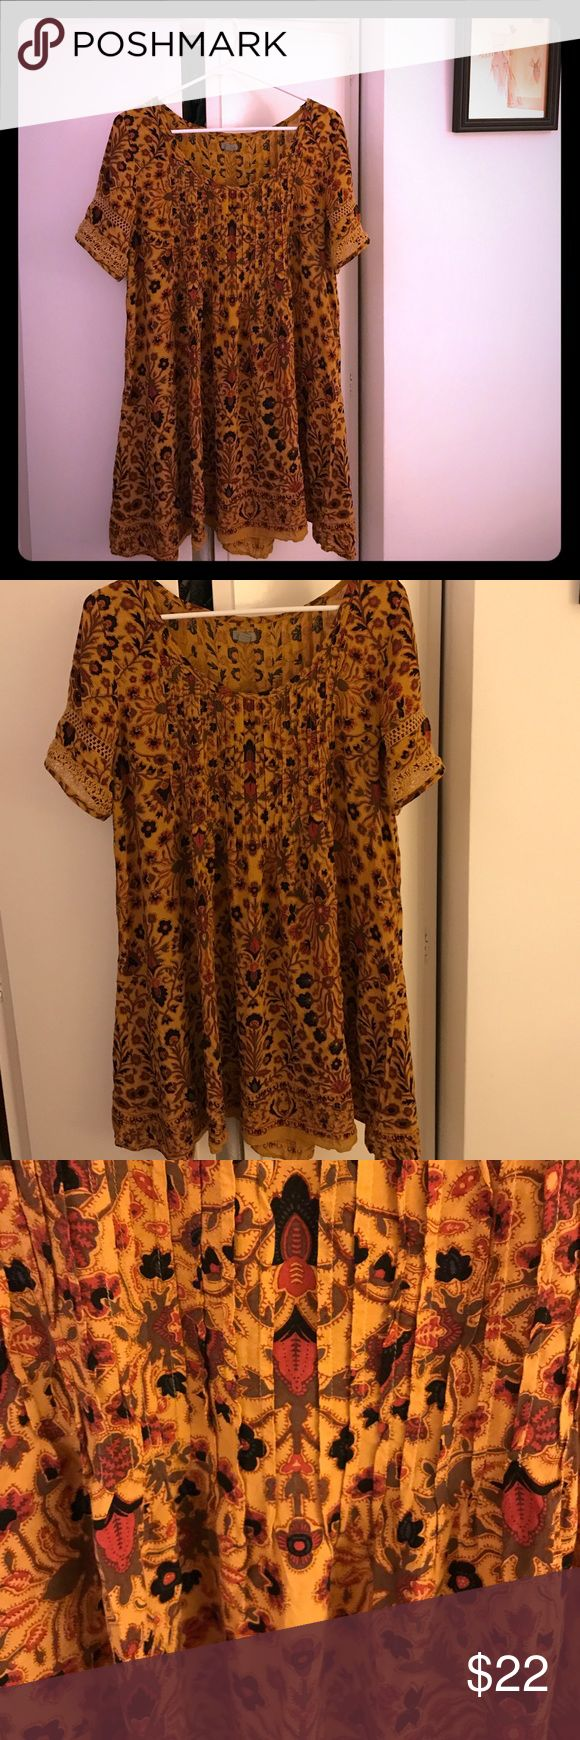 Ecote mustard color dress ❤️ size M Ecote mustard, black, maroon, and olive colored dress, lace at the sleeves, beautiful print, size Medium ❤️ Ecote Dresses Mini